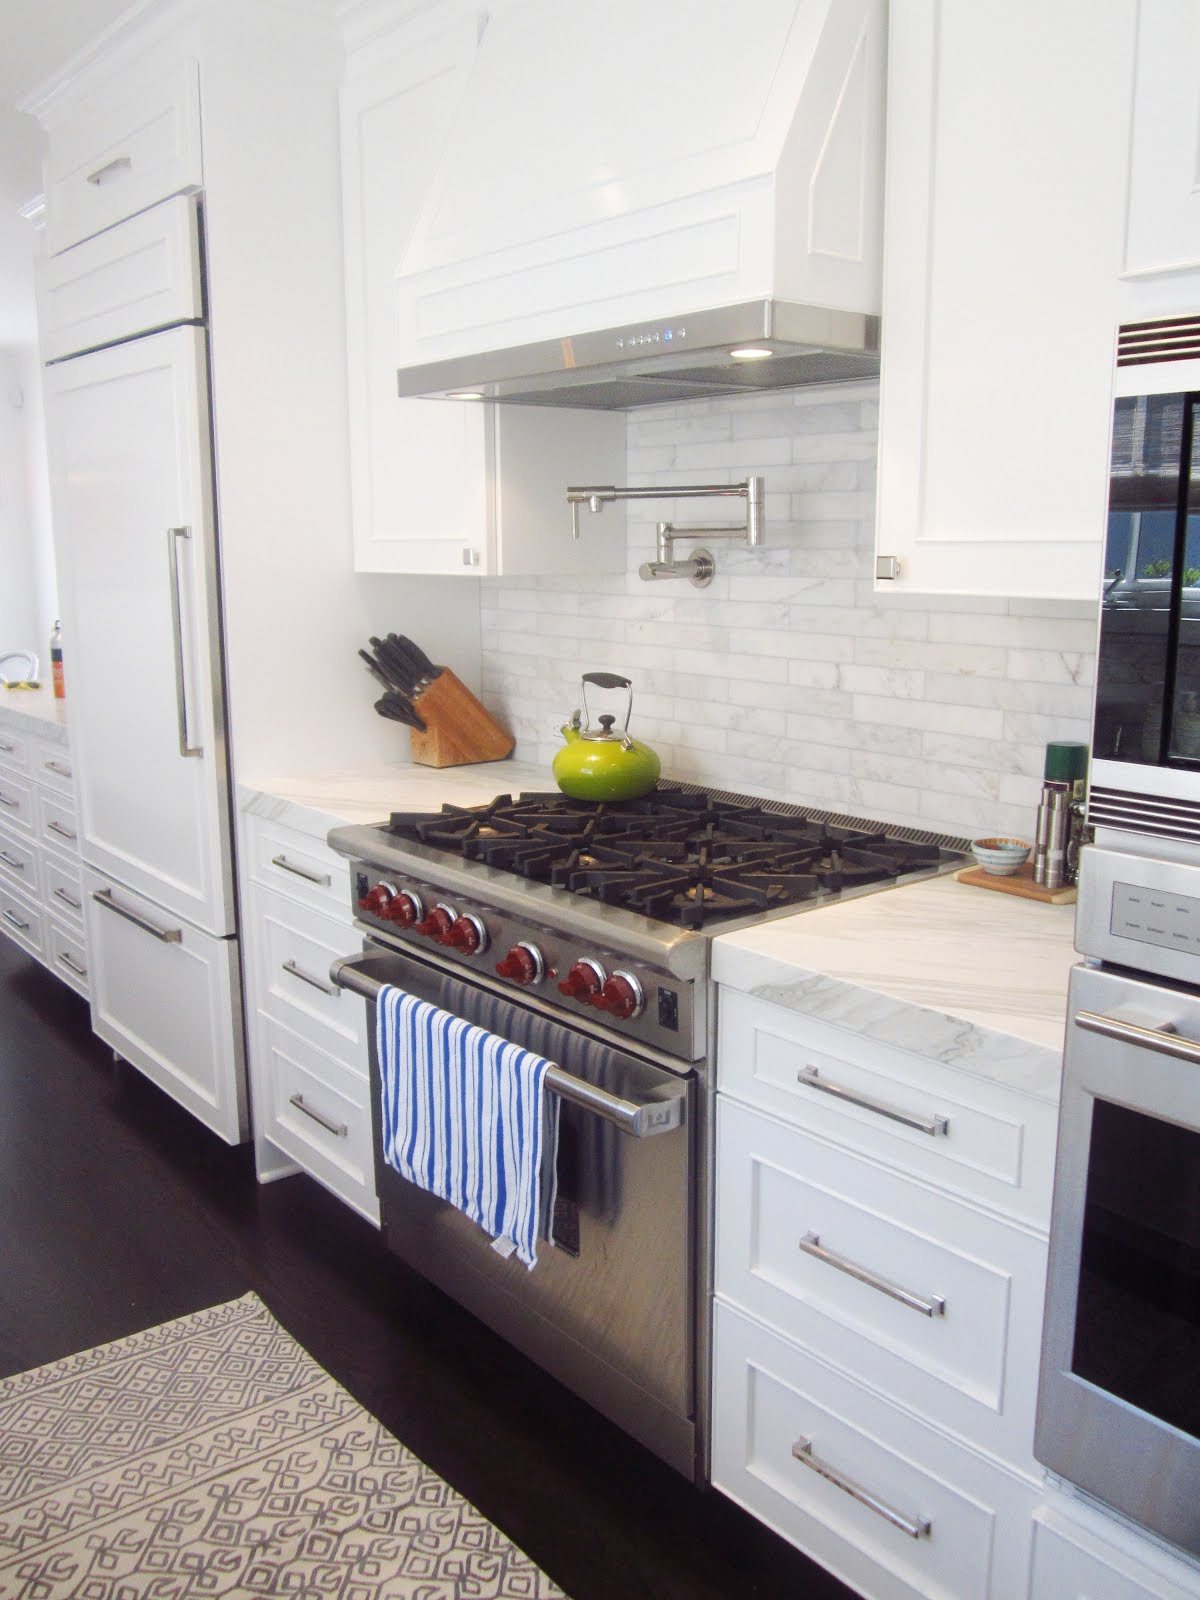 COCOCOZY EXCLUSIVE: A CHIC GALLEY KITCHEN!